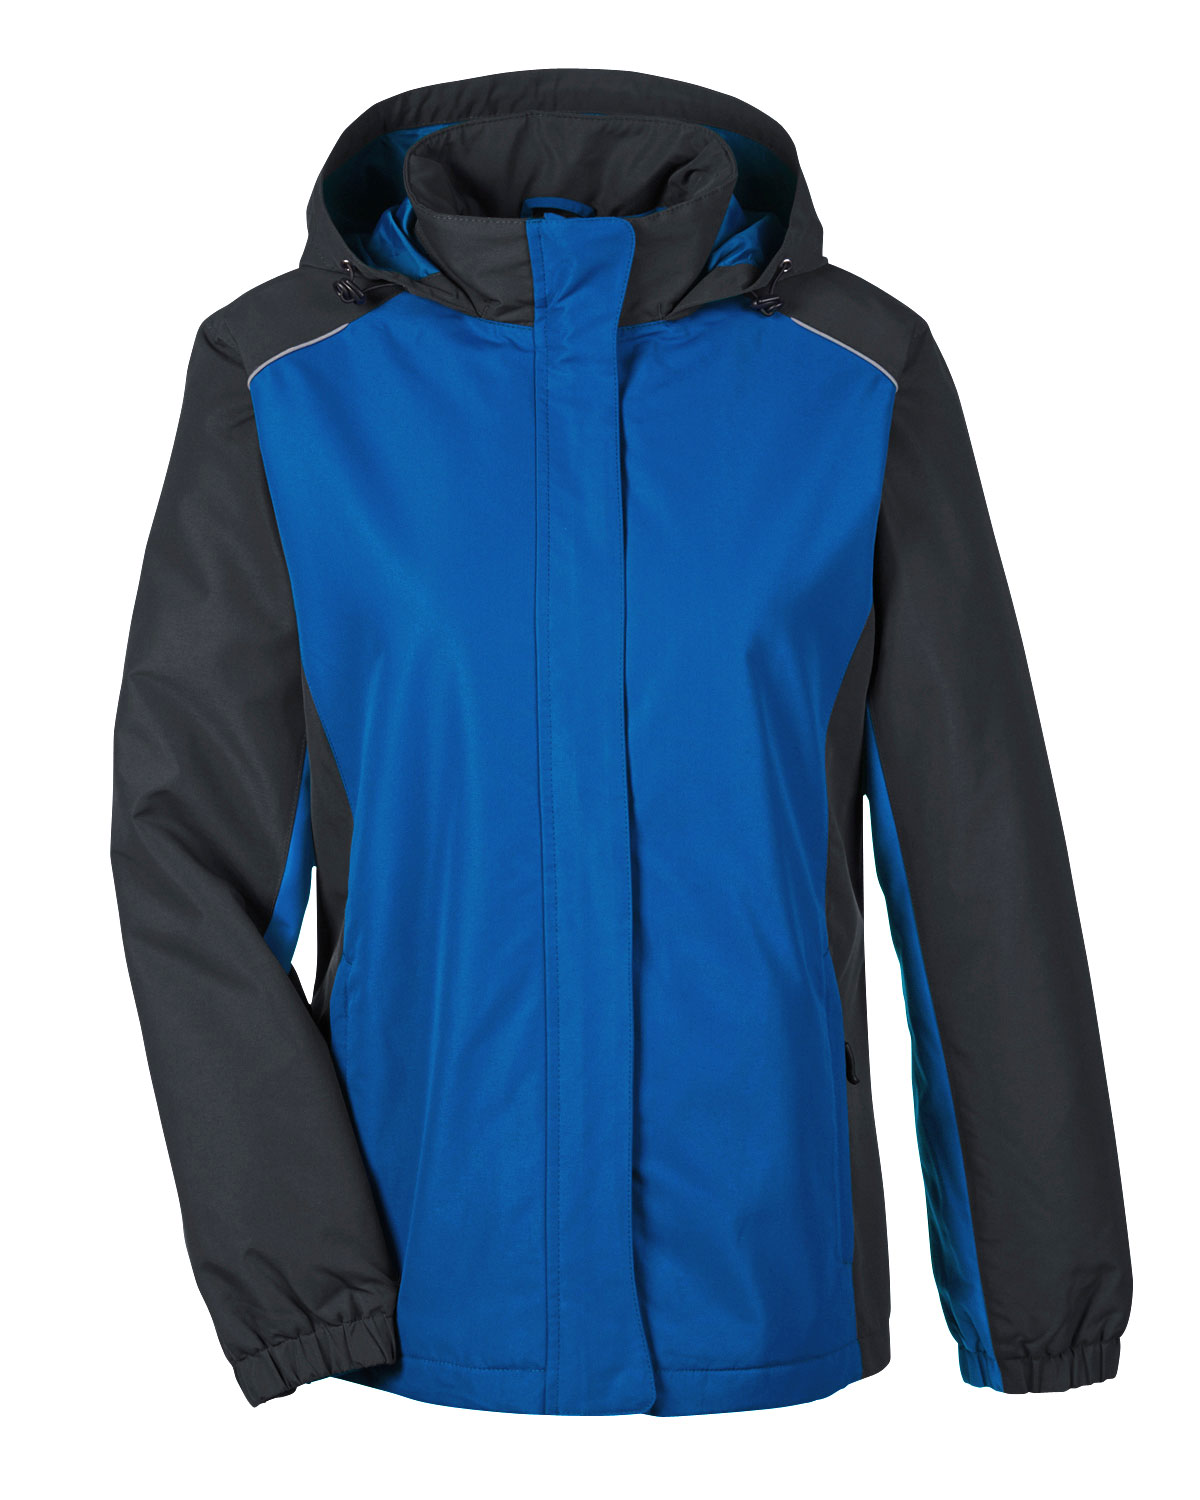 Core 365 Ladies Inspire Colorblock All-Season Jacket